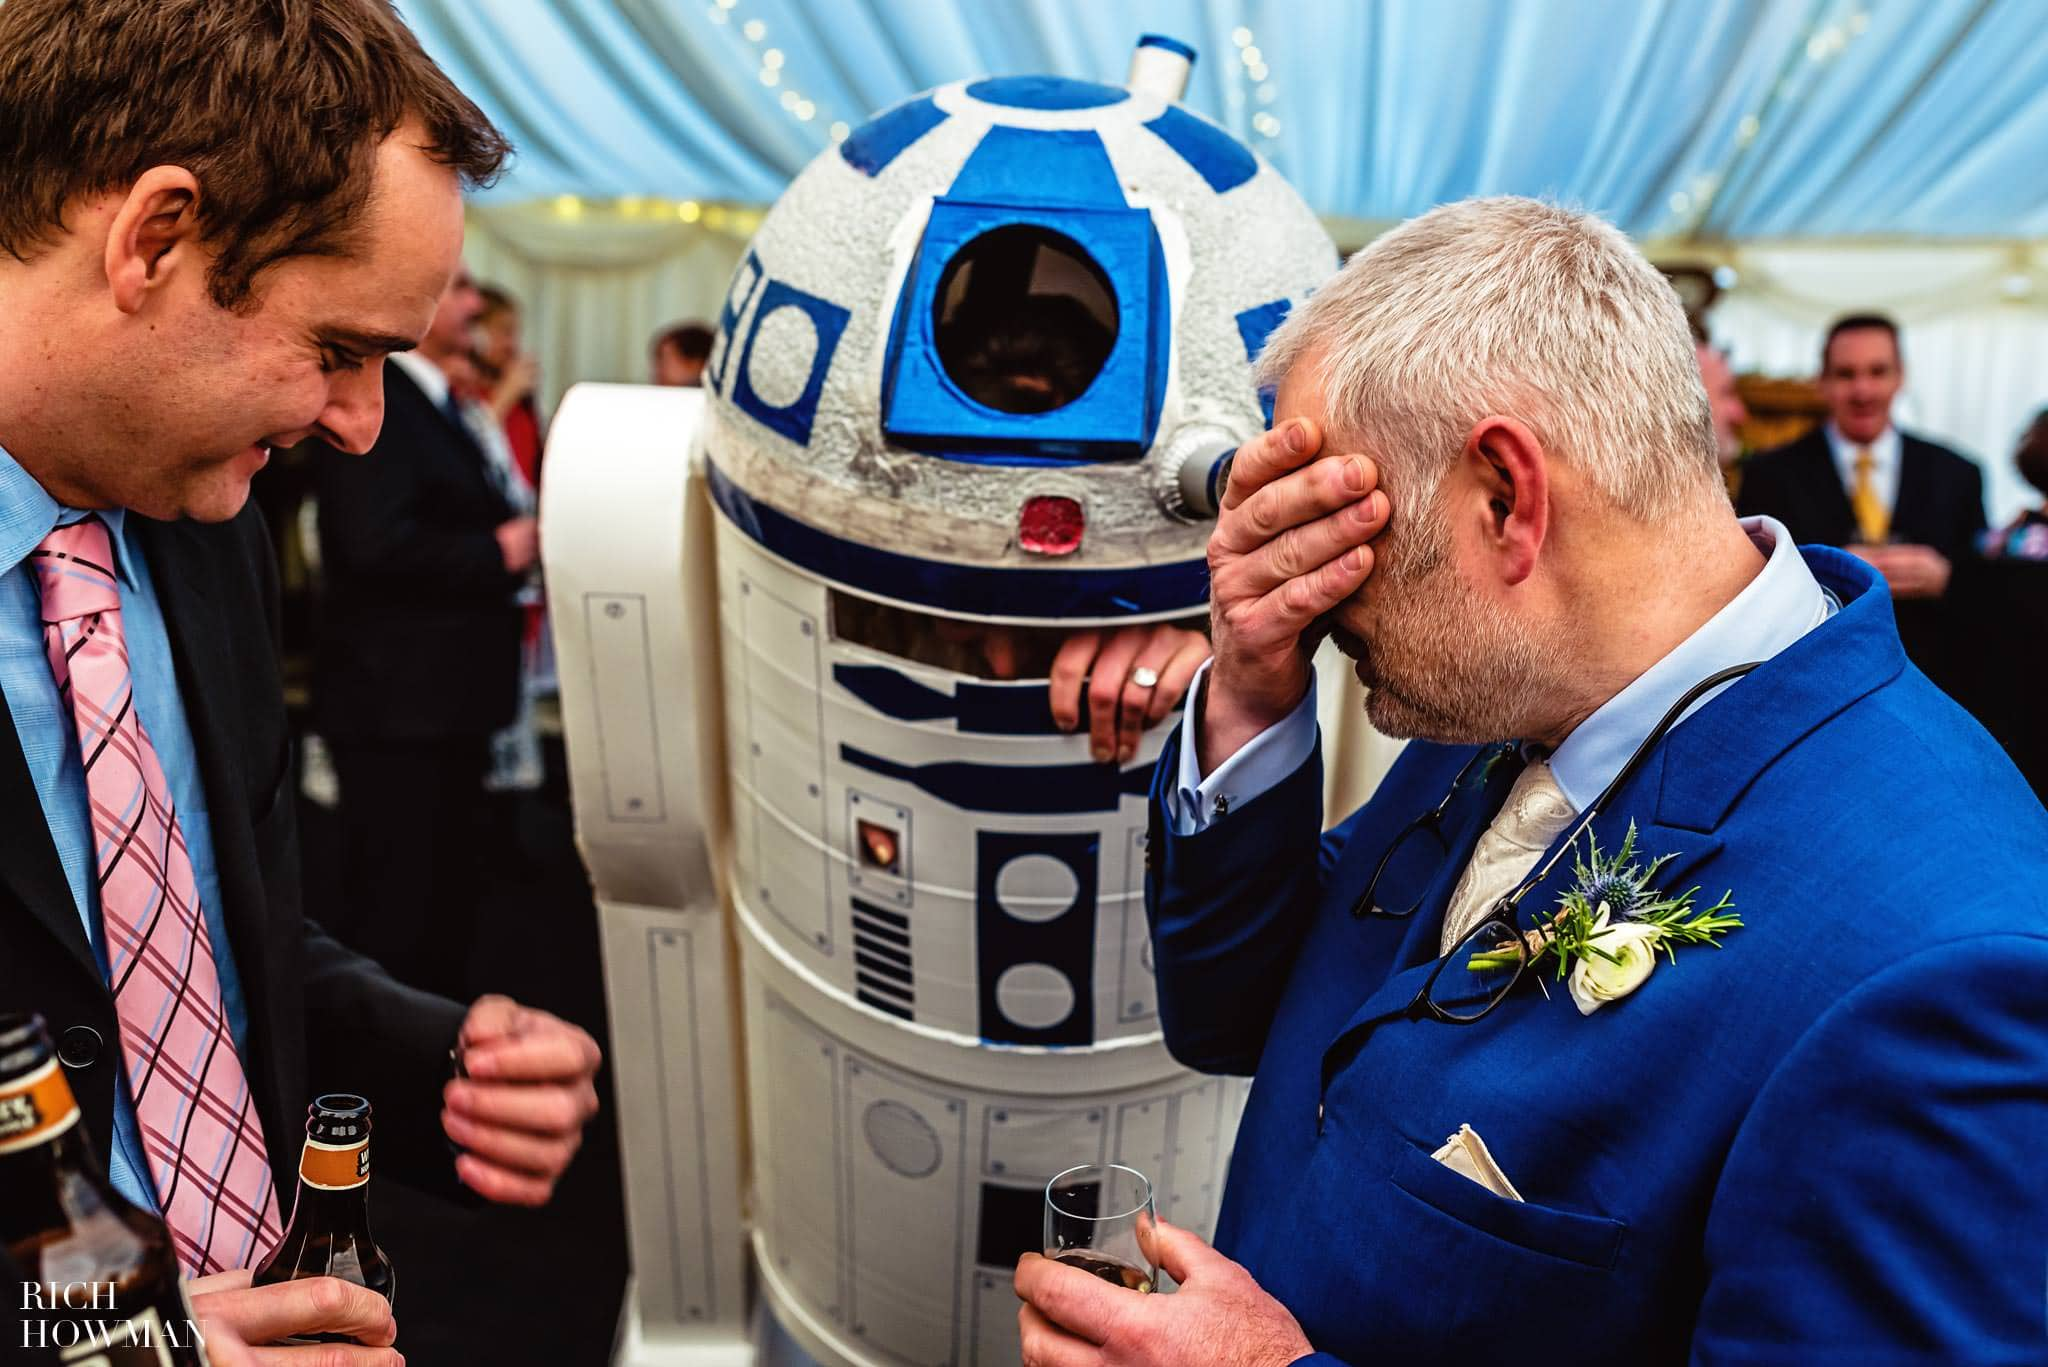 Bride in R2D2 costume at her star wars wedding